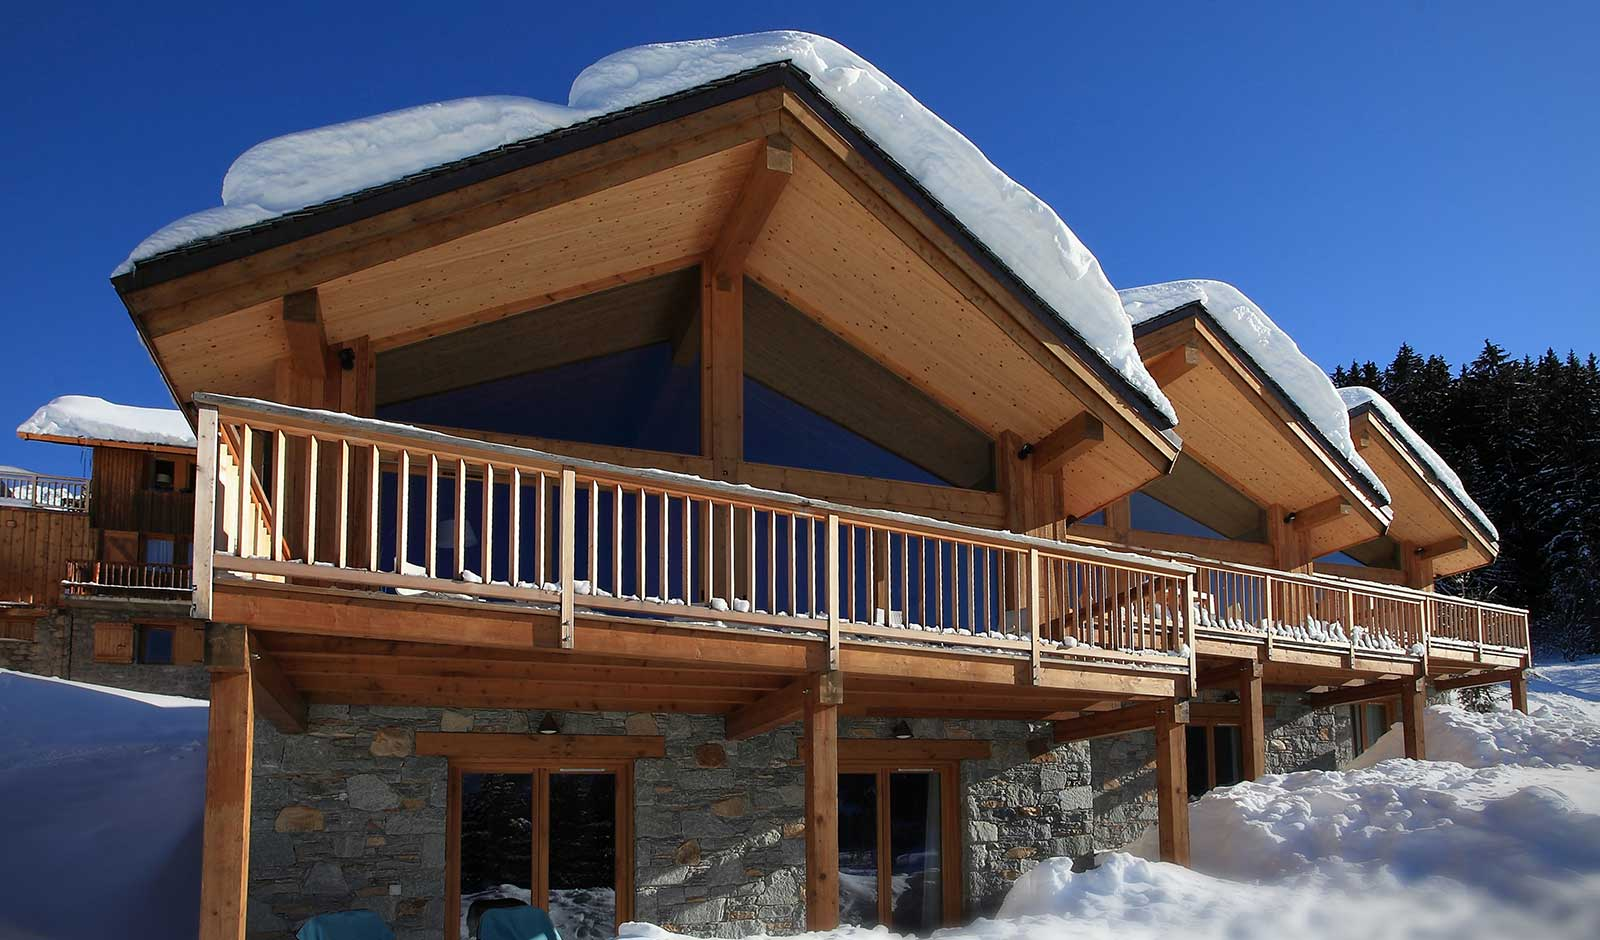 hotel-adray-telebar-12-atelier-crea-and-co-architecte-design-project-manager-meribel-savoie